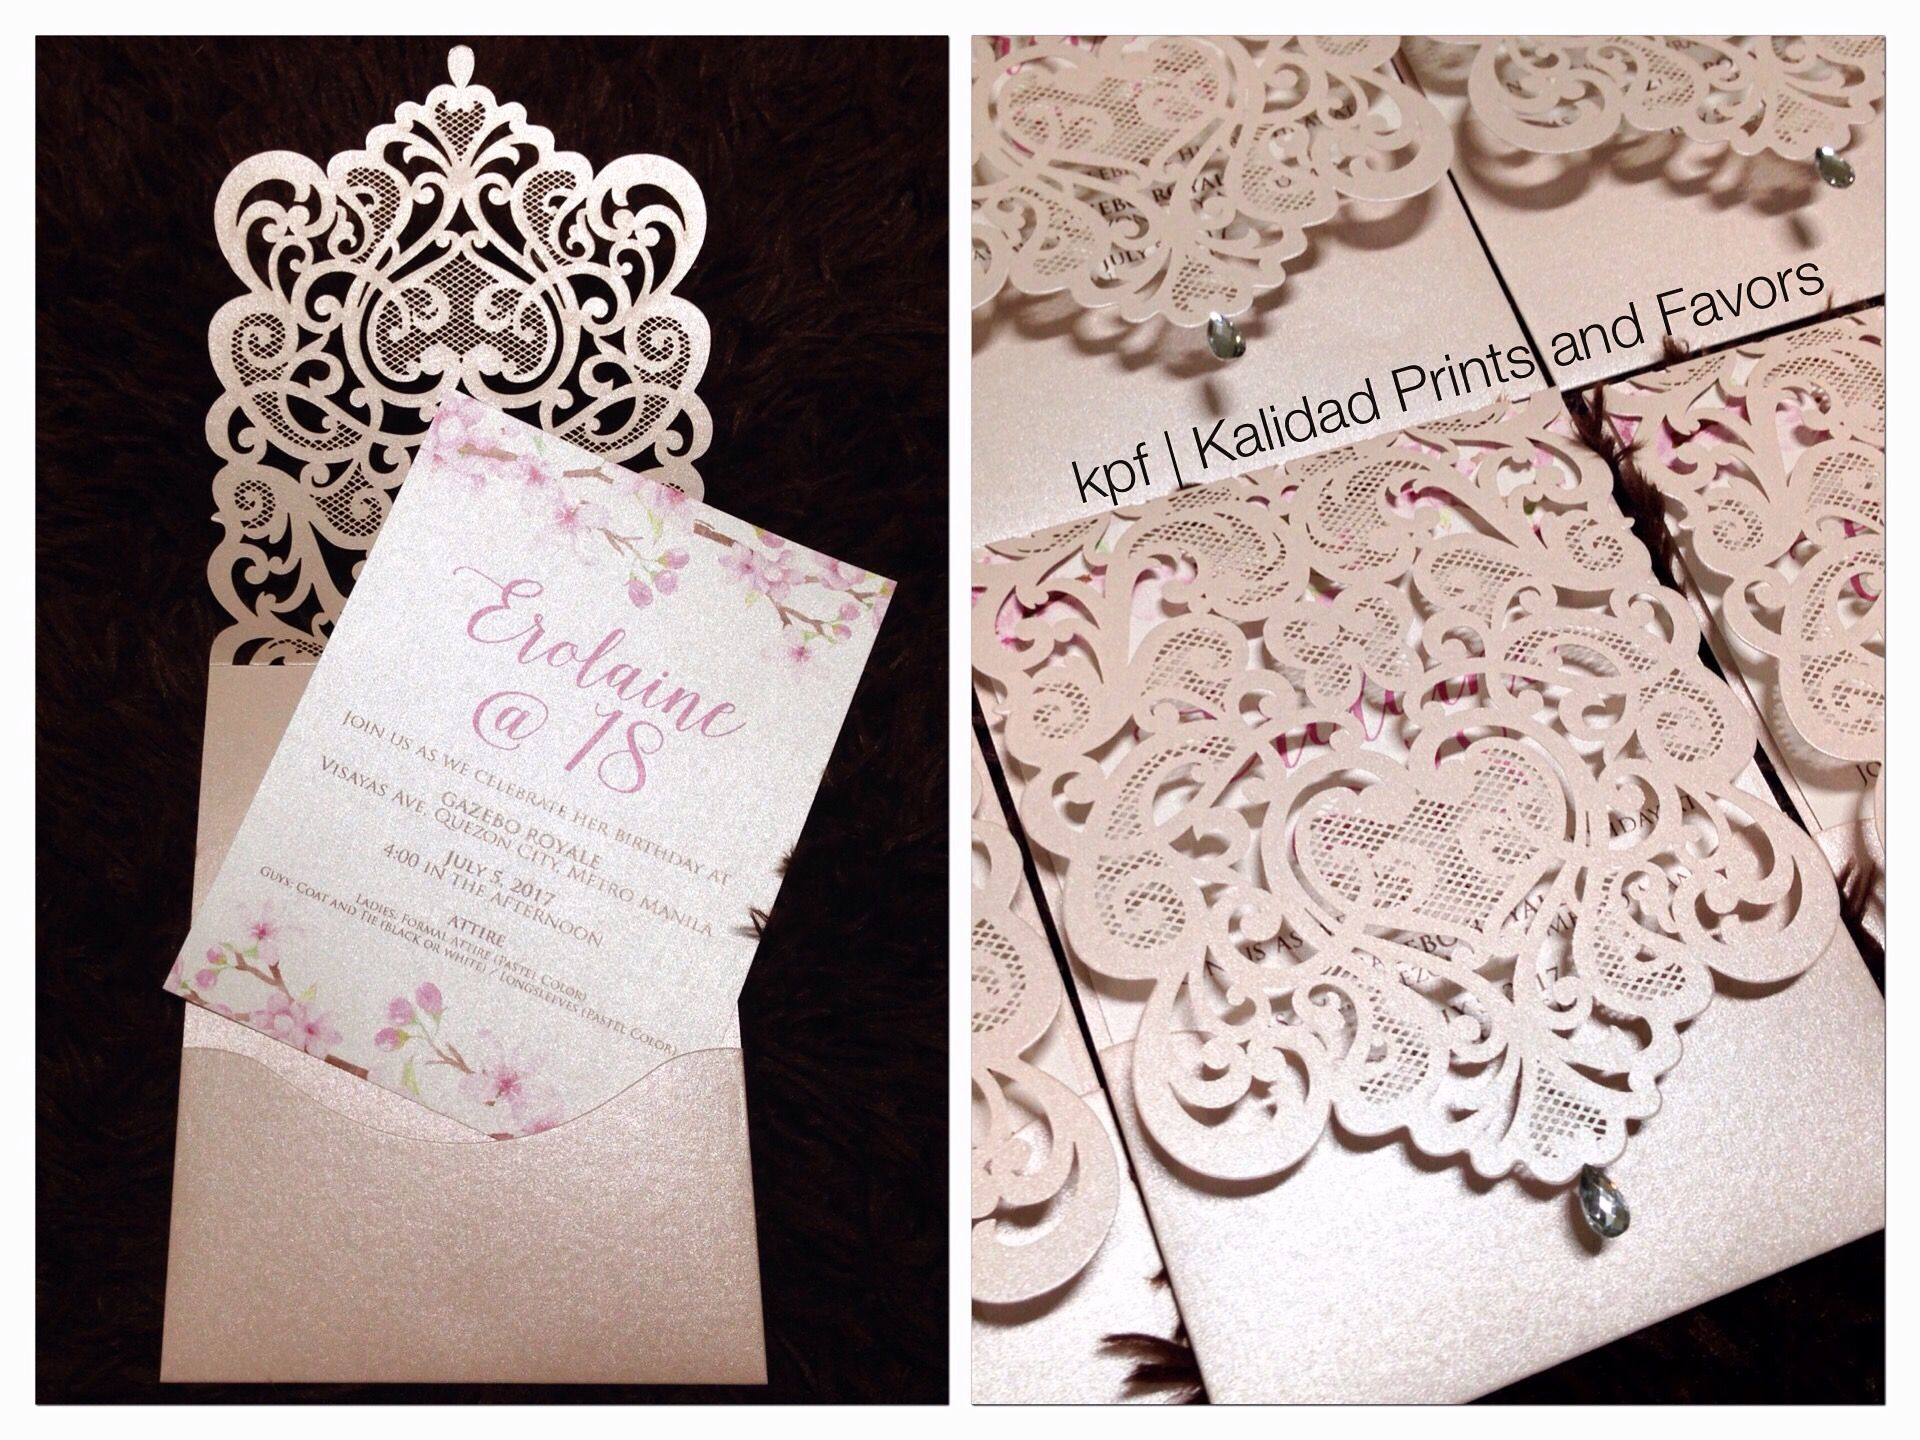 Laser cut debut invitation cherryblossominvitation lasercut laser cut debut invitation cherryblossominvitation lasercut lasercutinvitations debutinvitation birthdayinvitation cherryblossomthemedinvitation stopboris